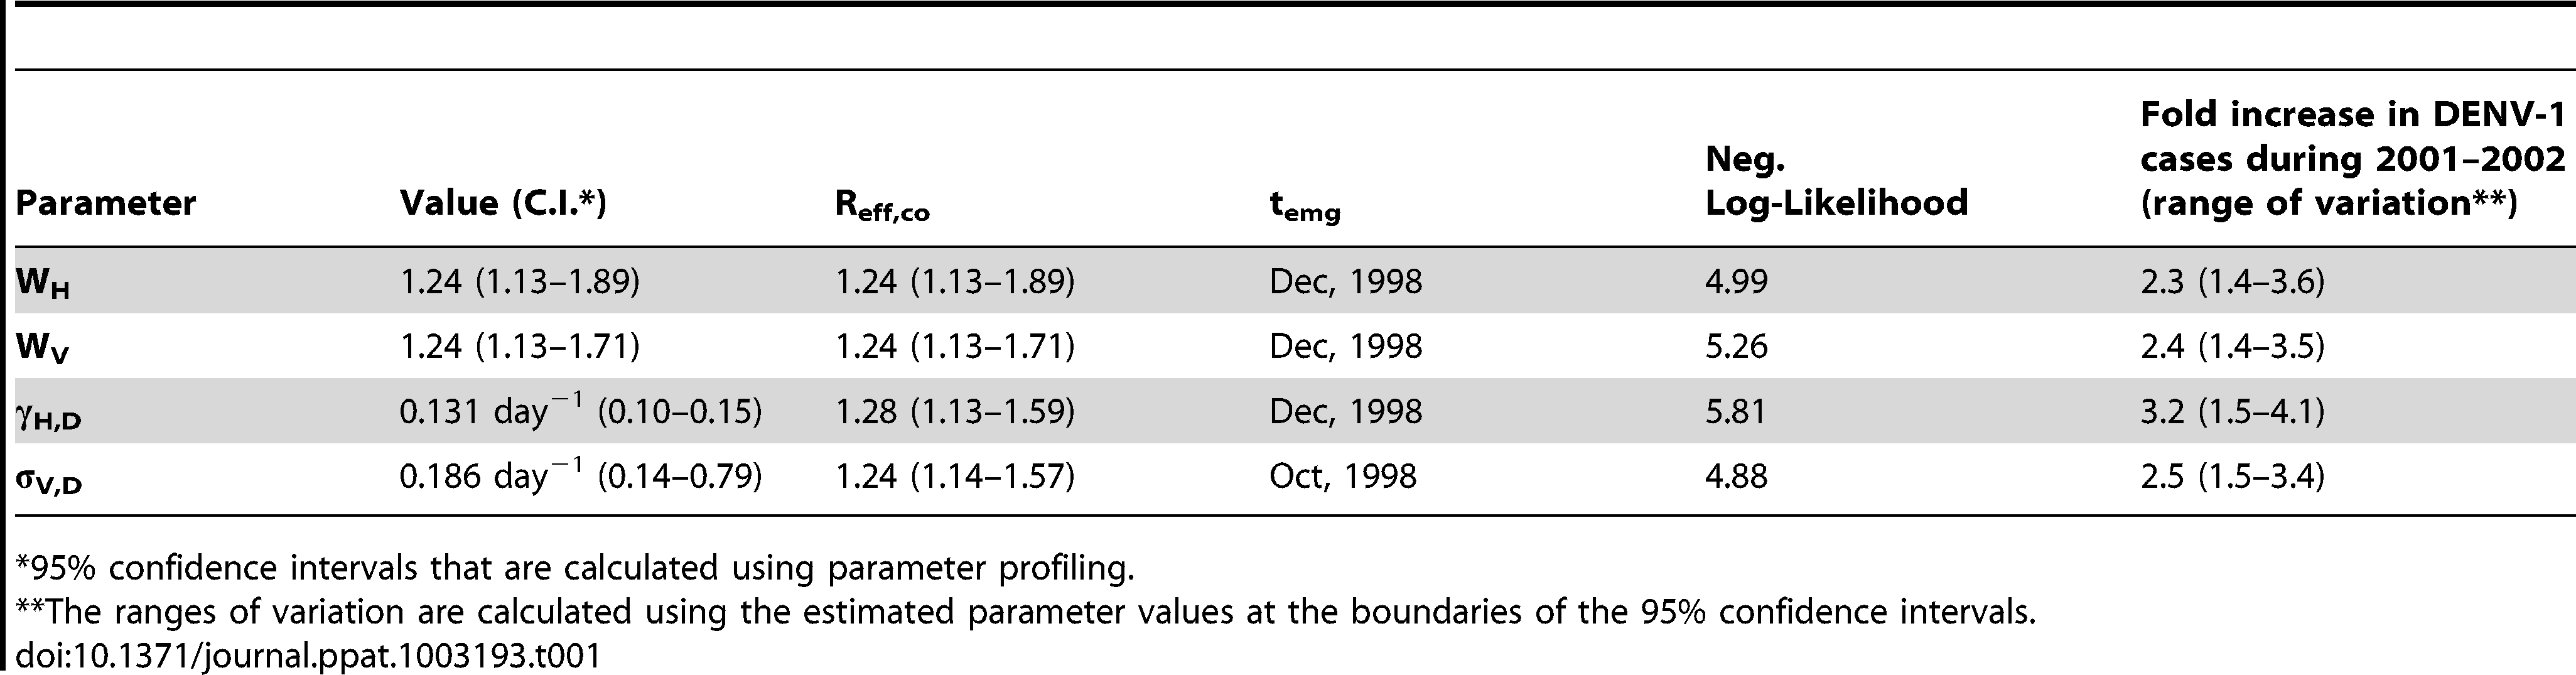 Maximum-likelihood estimates of parameter values and their corresponding increase in overall DENV-1 cases during 2001 and 2002.